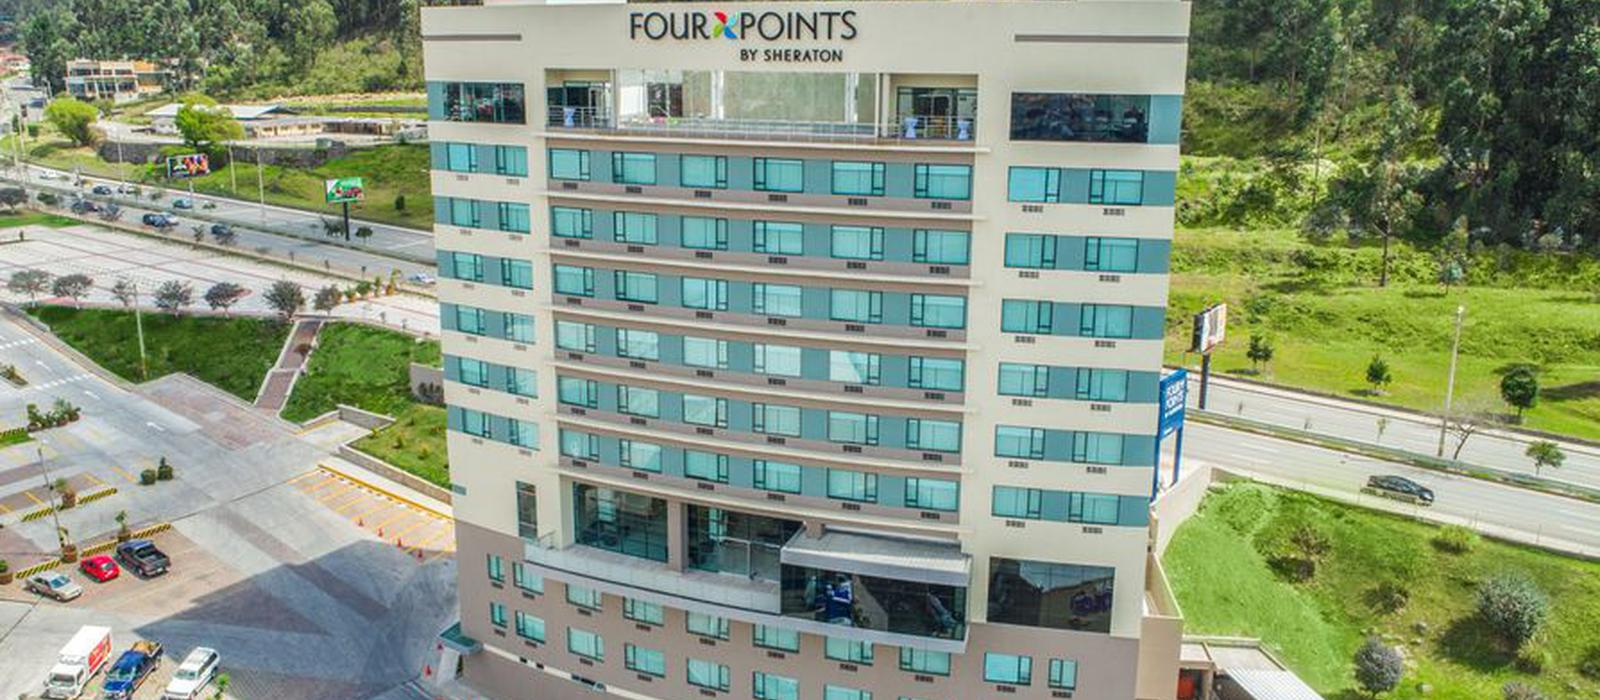 Hotel Four Points by Sheraton Cuenca Cuenca